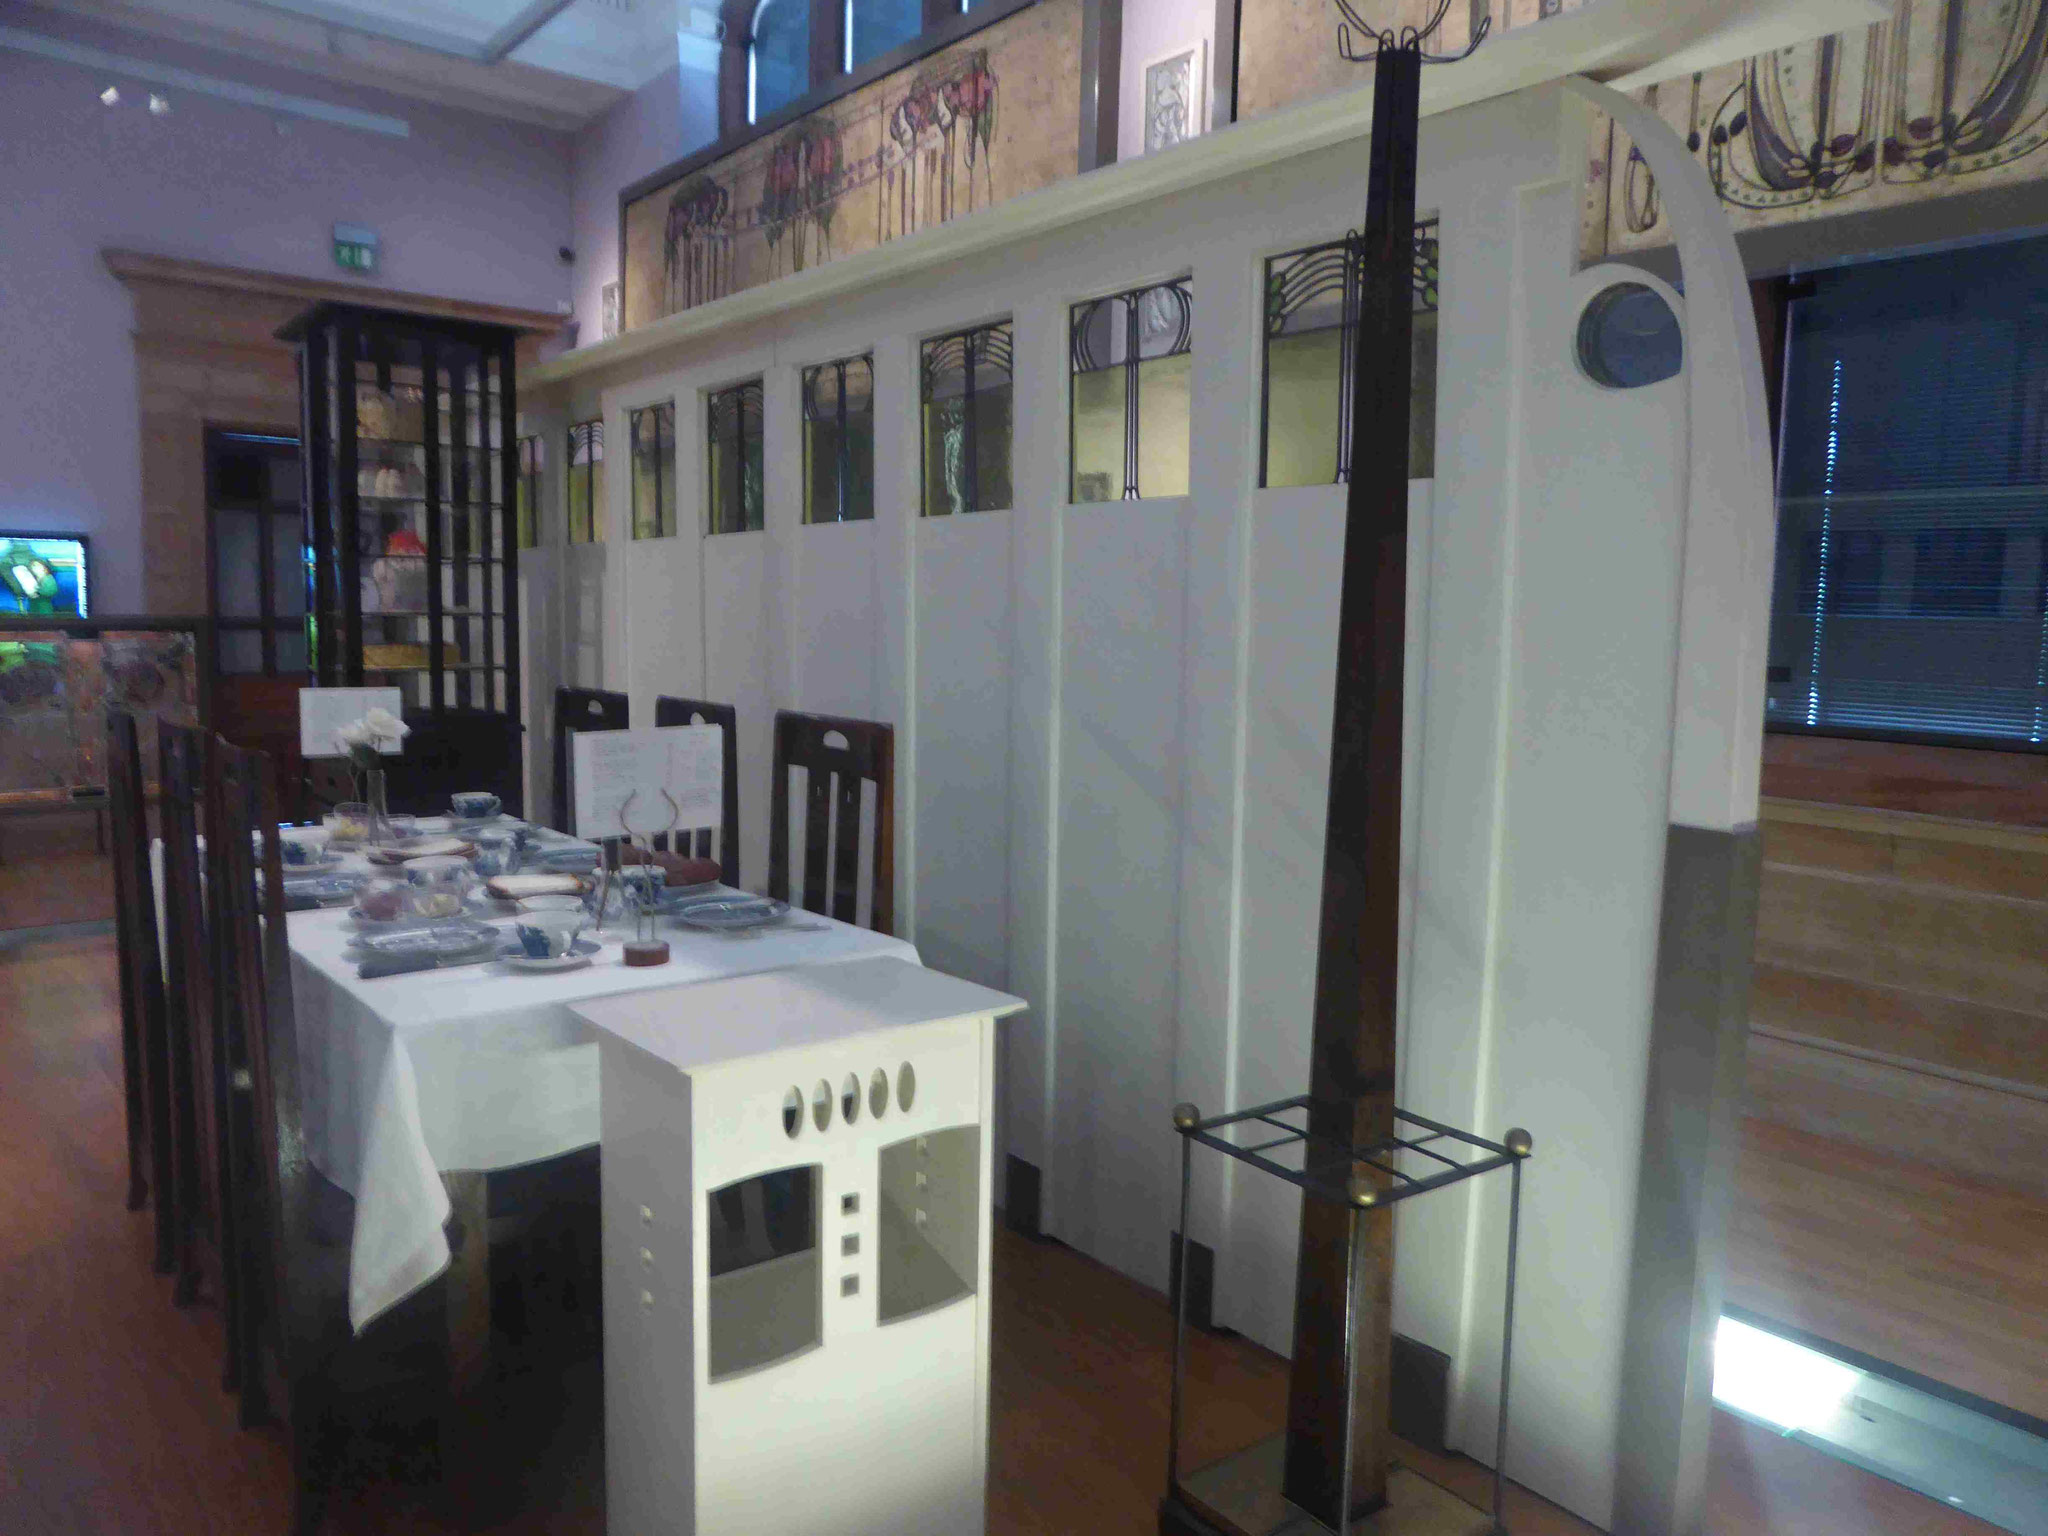 Charles Rennie Mackintosh, Kelvingrove Art Gallery and Museum, Glasgow, Schottland